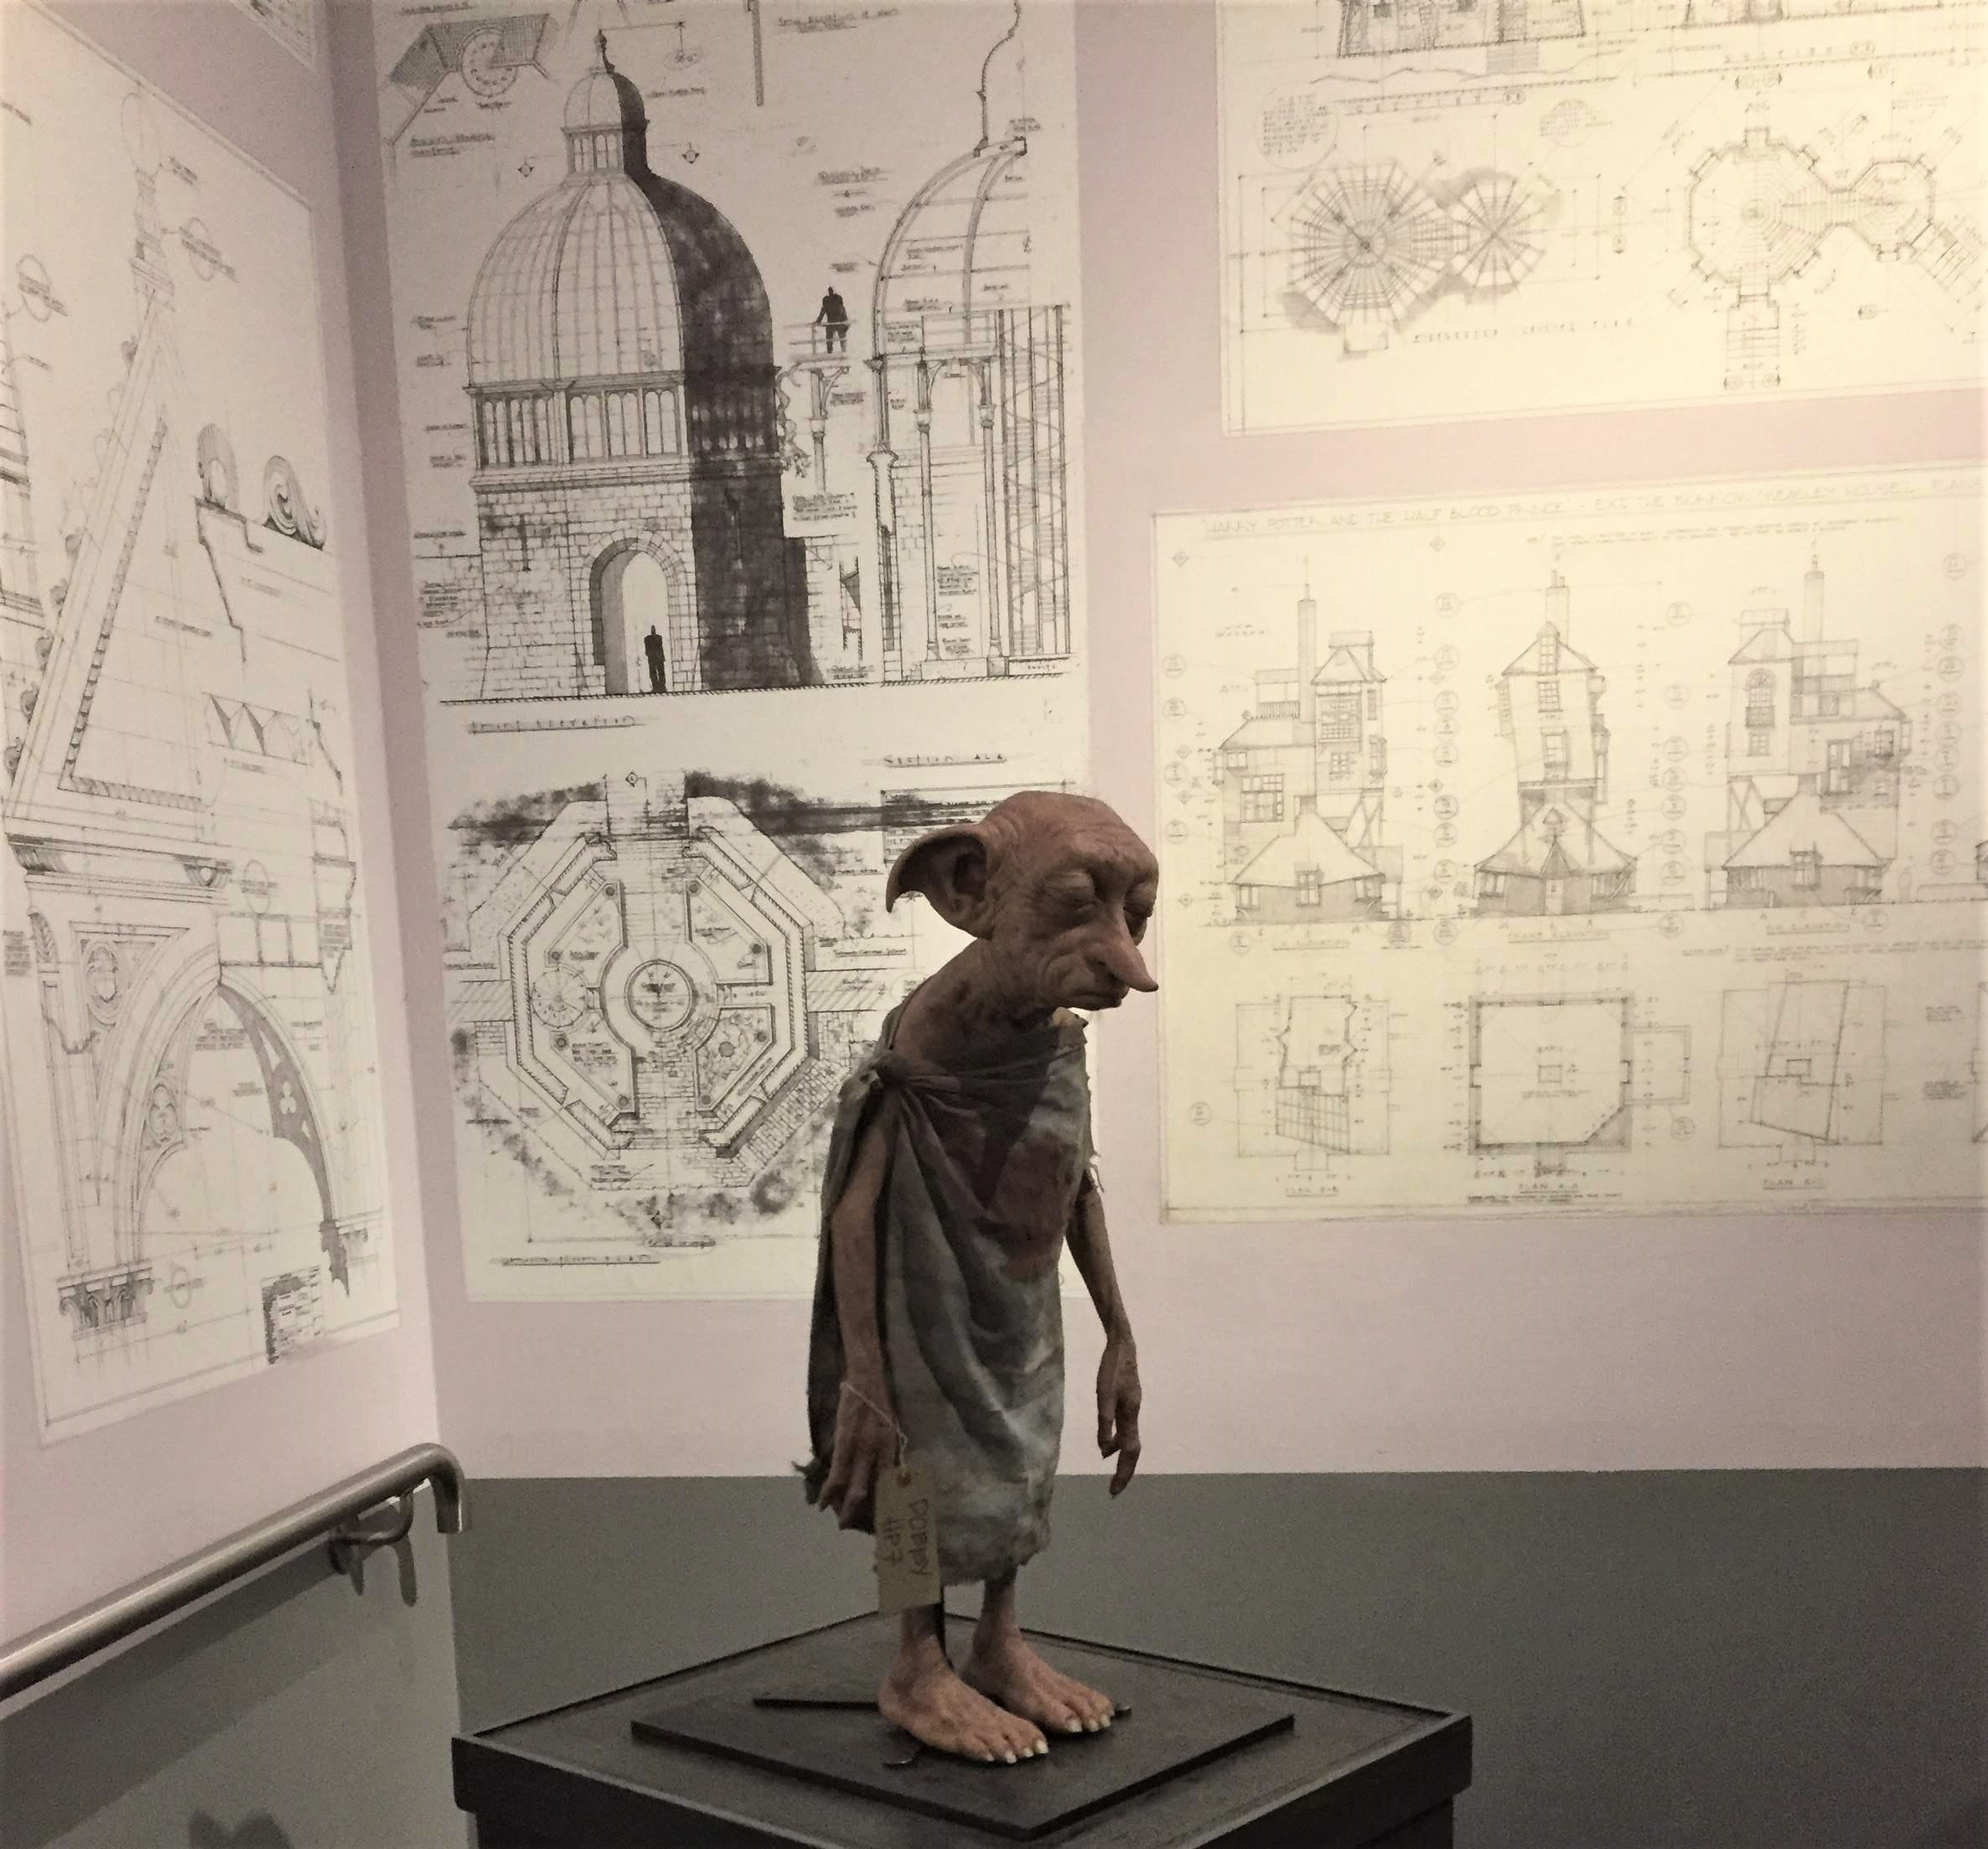 Model of Dobby the House Elf at the Harry Potter Studio Tour in London.